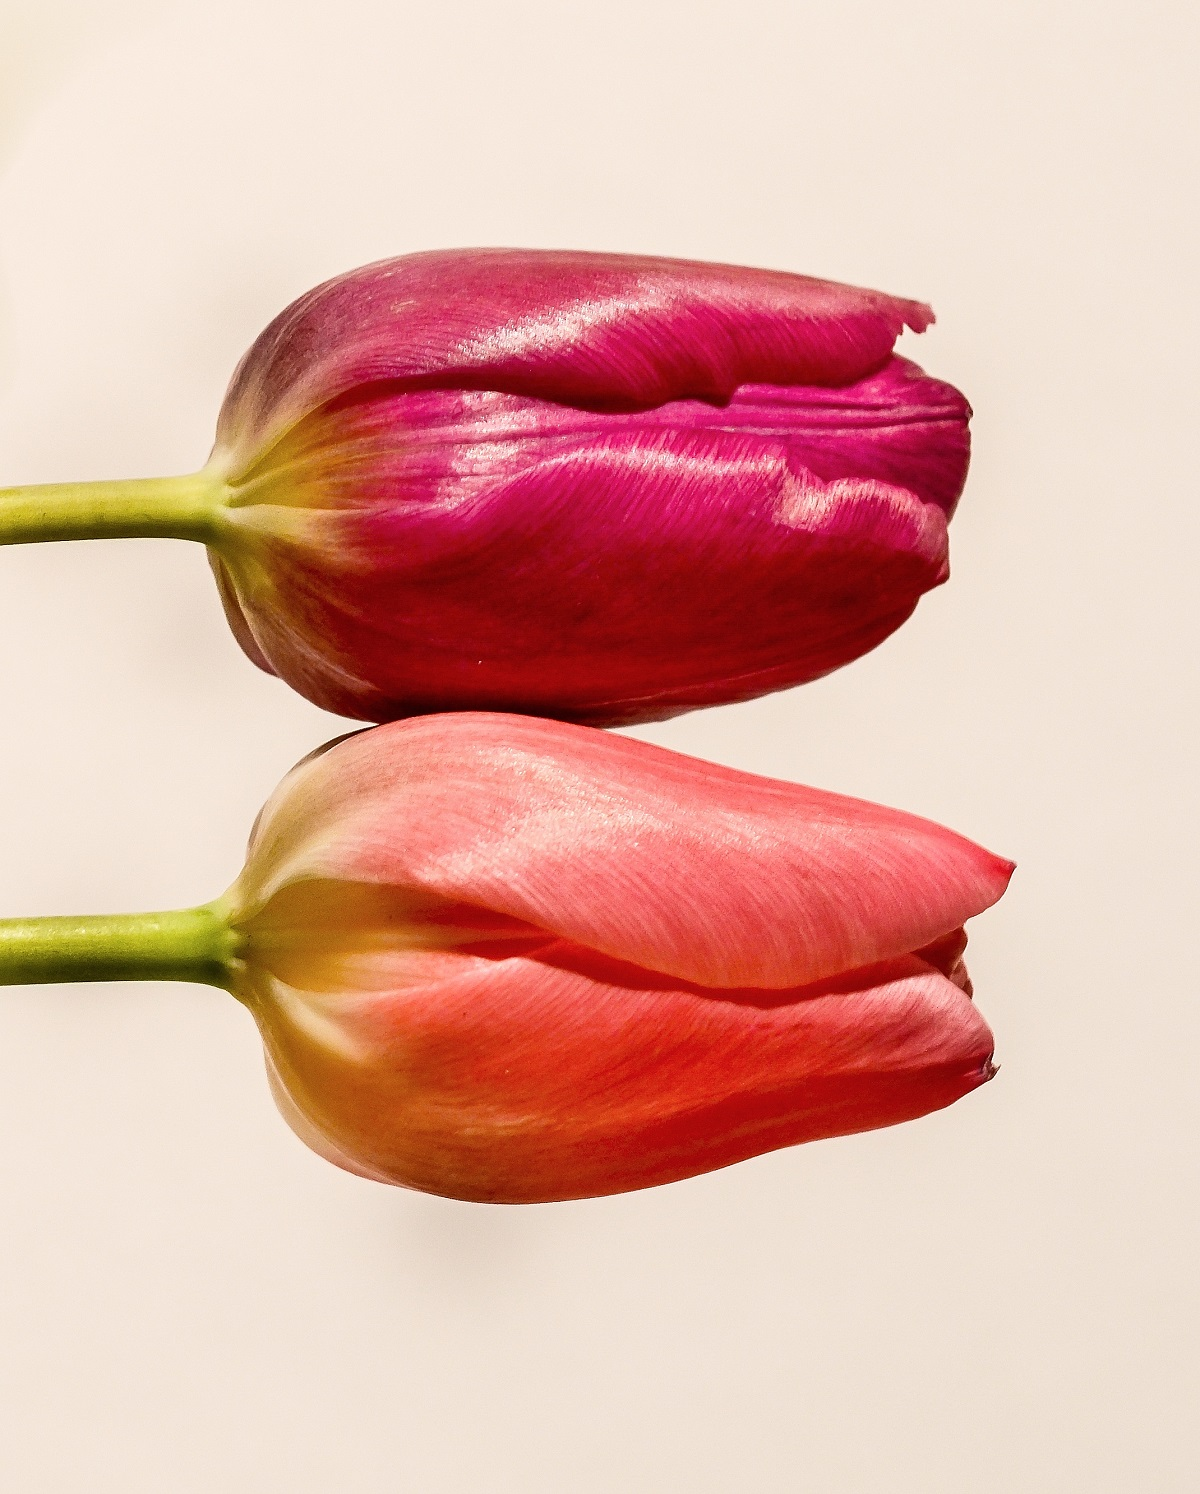 tulips-free-license-cc0